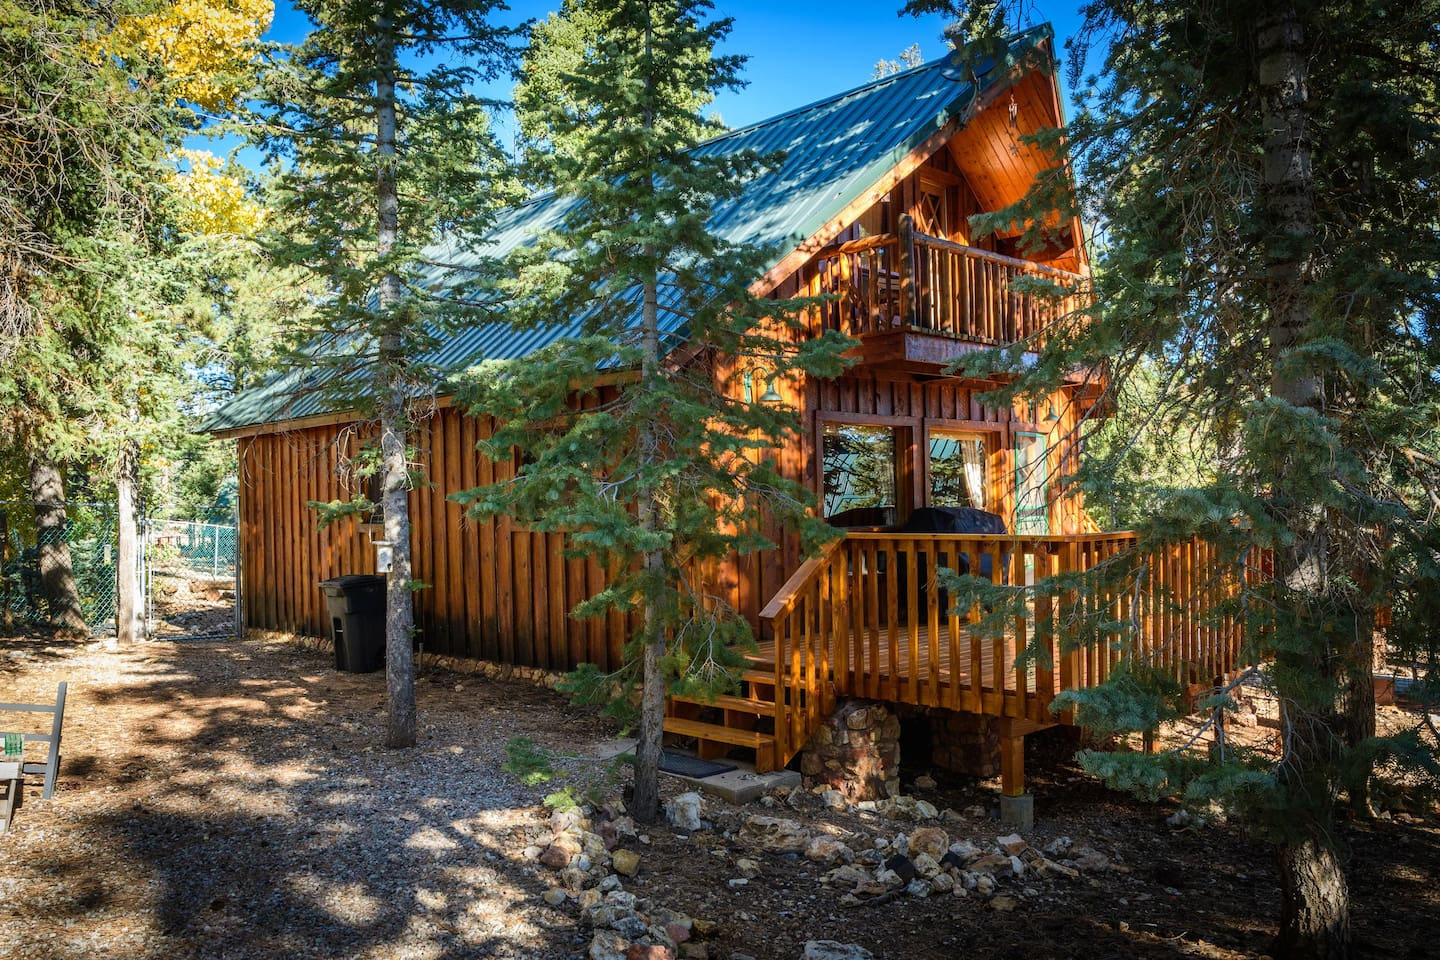 cozy head cabin ha rentals comfort best location cabins brian the in property value